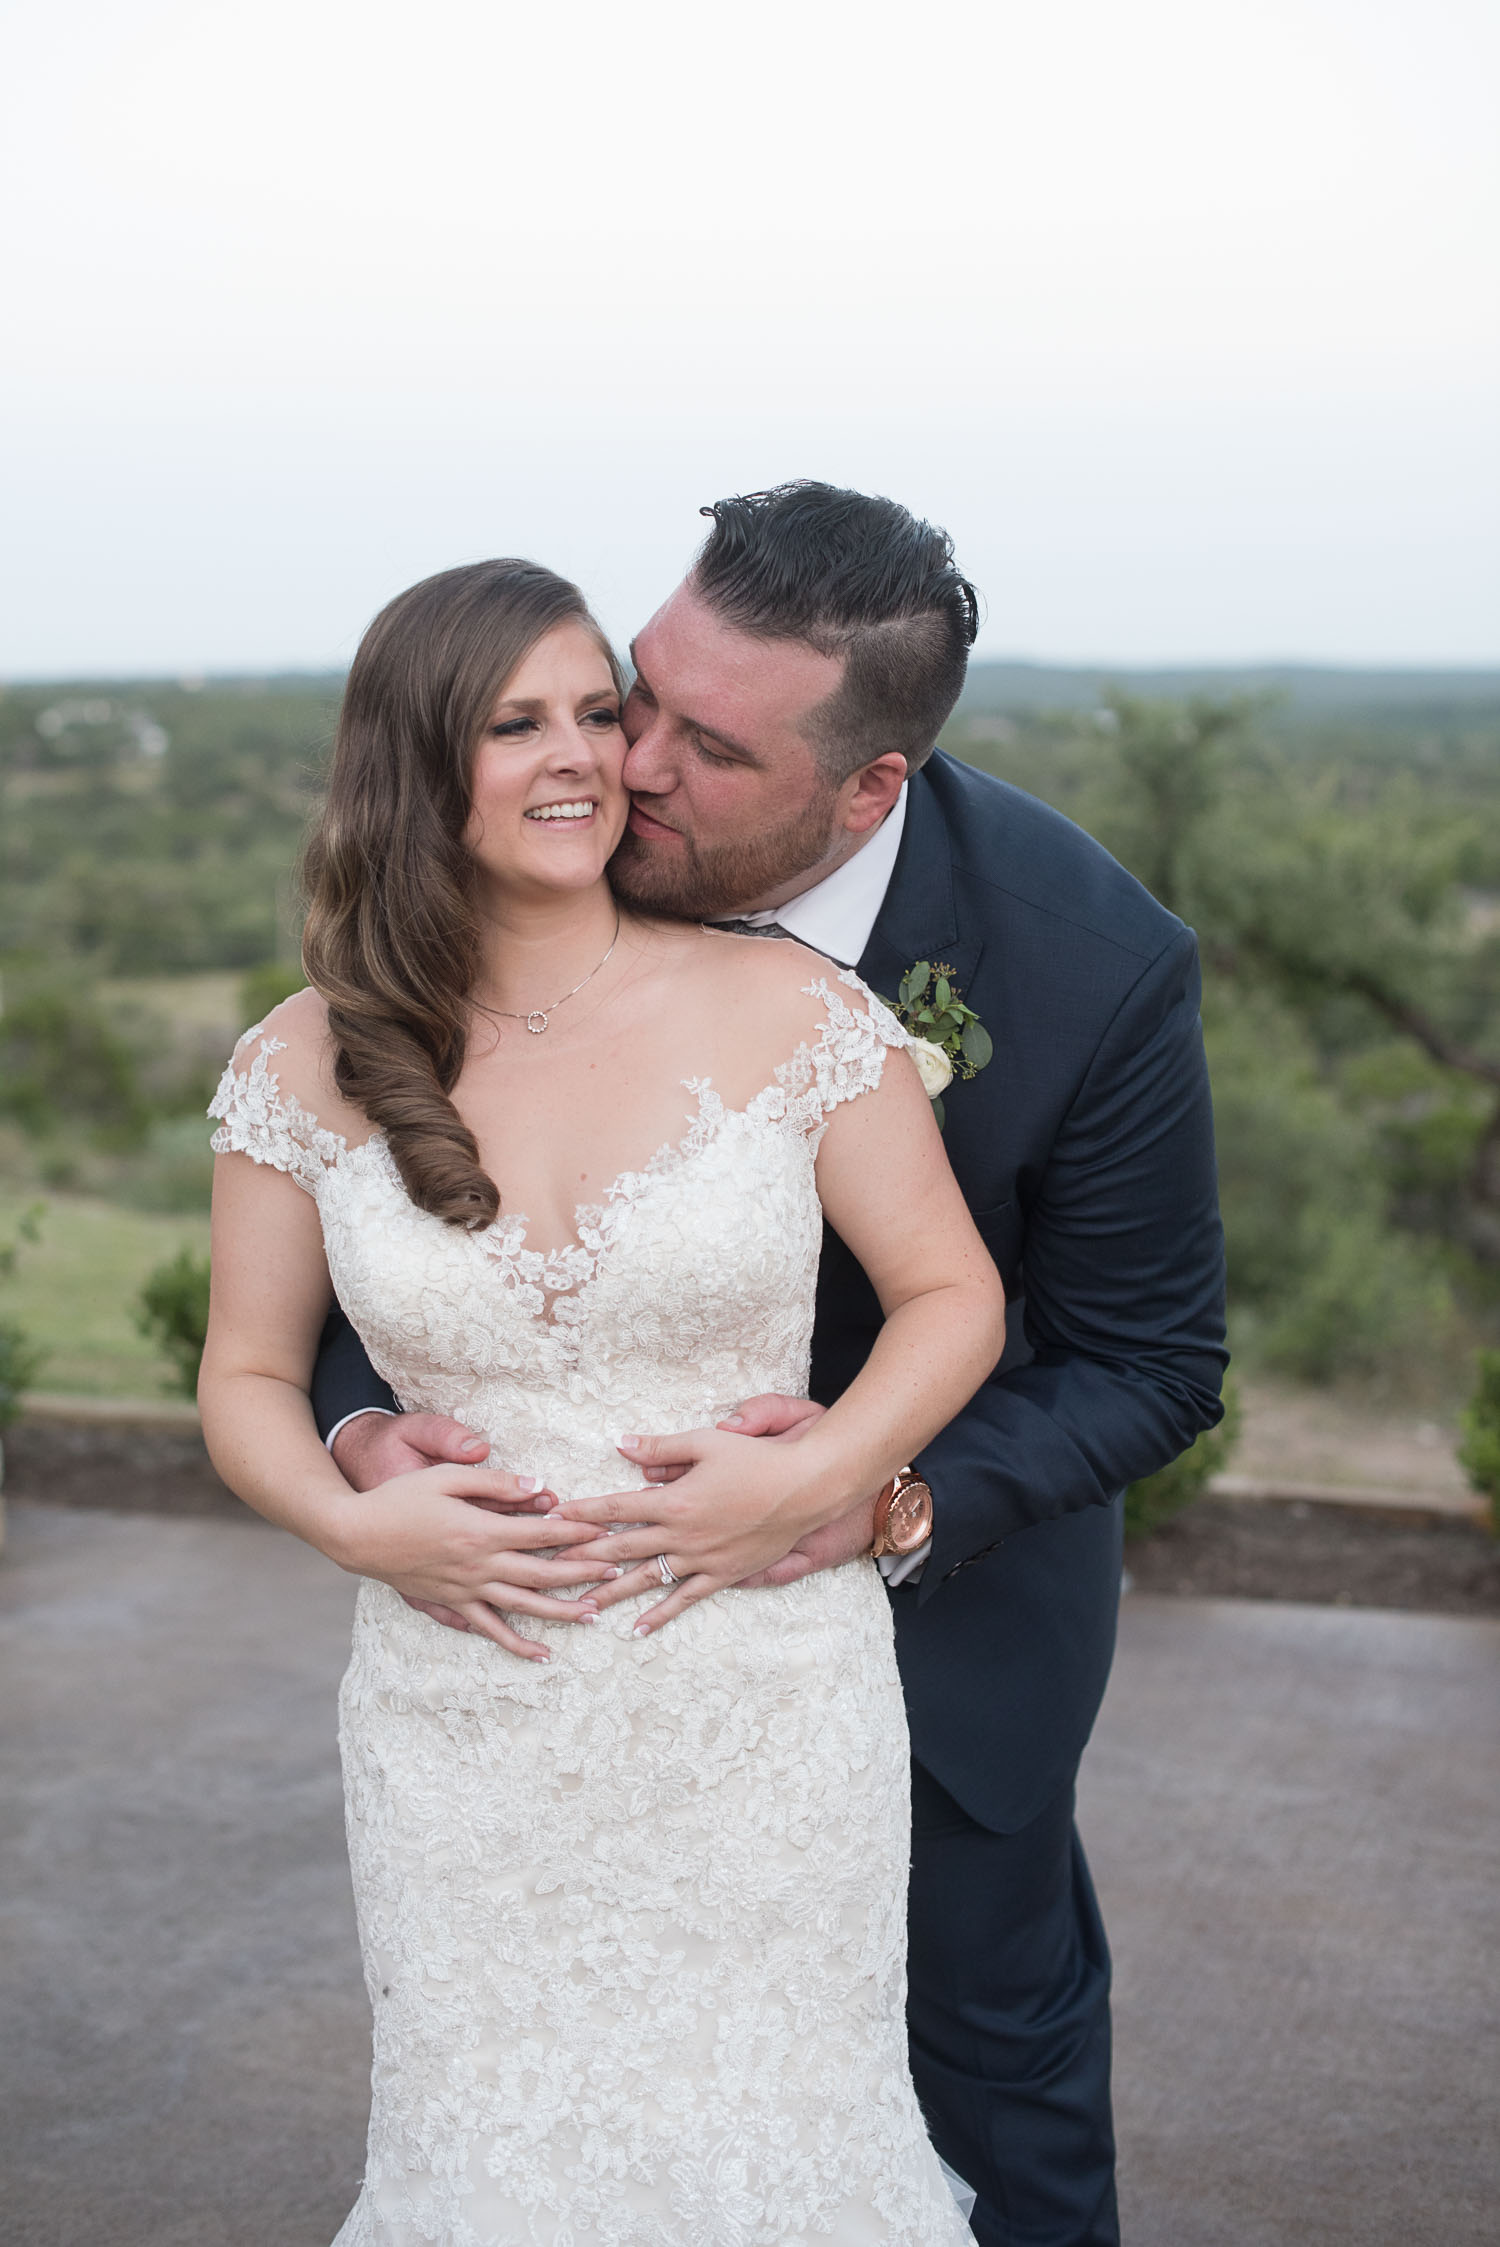 Hinton Wedding at Canyonwood Ridge Dripping Springs Texas Wedding Photography-162.jpg